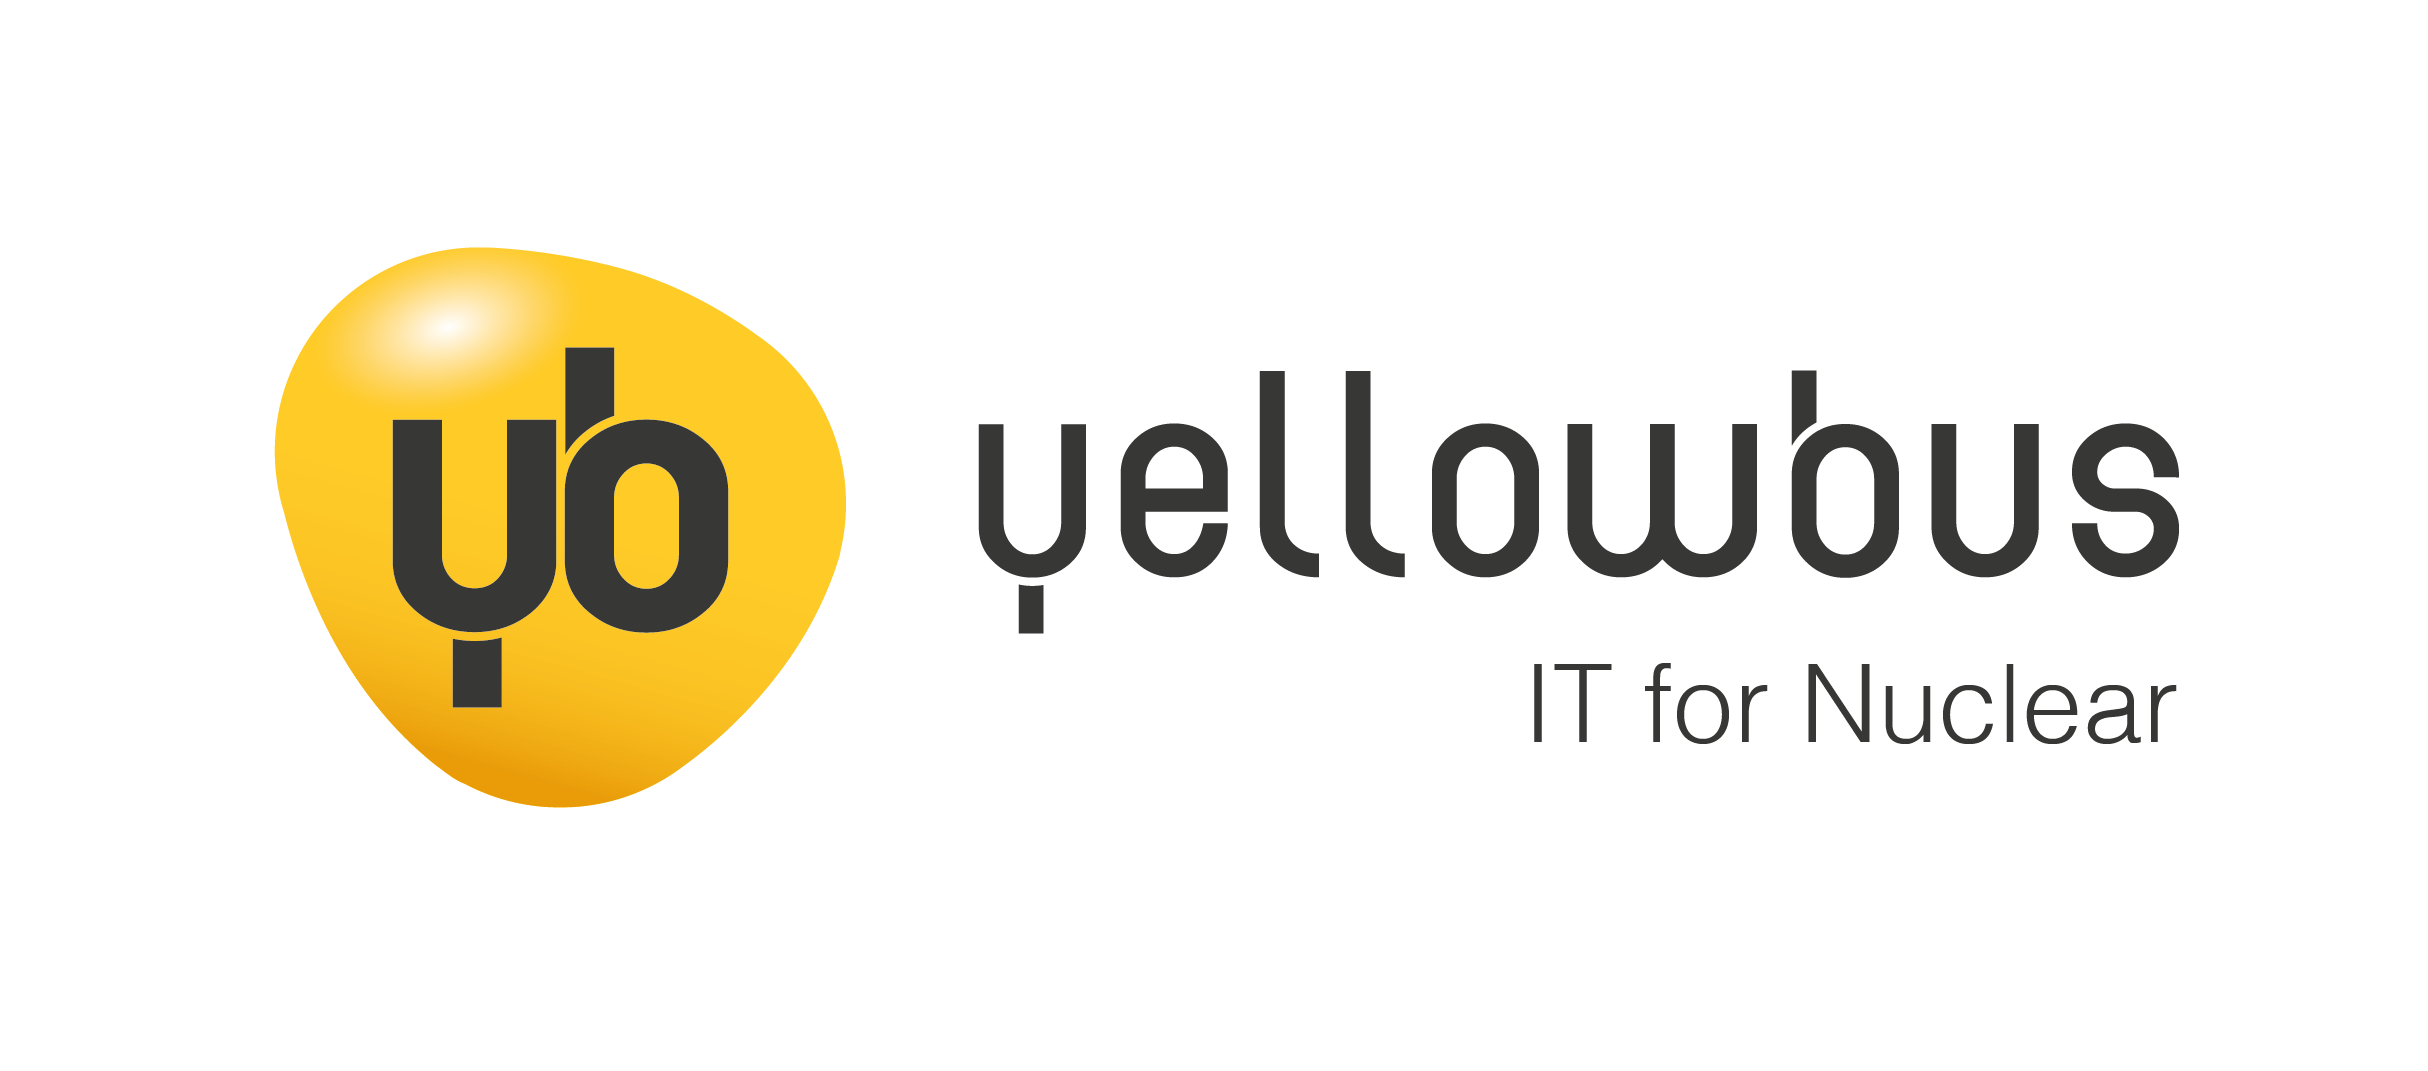 Yellowbus launch specialist IT services to support their continued growth within the Nuclear & Engineering sectors